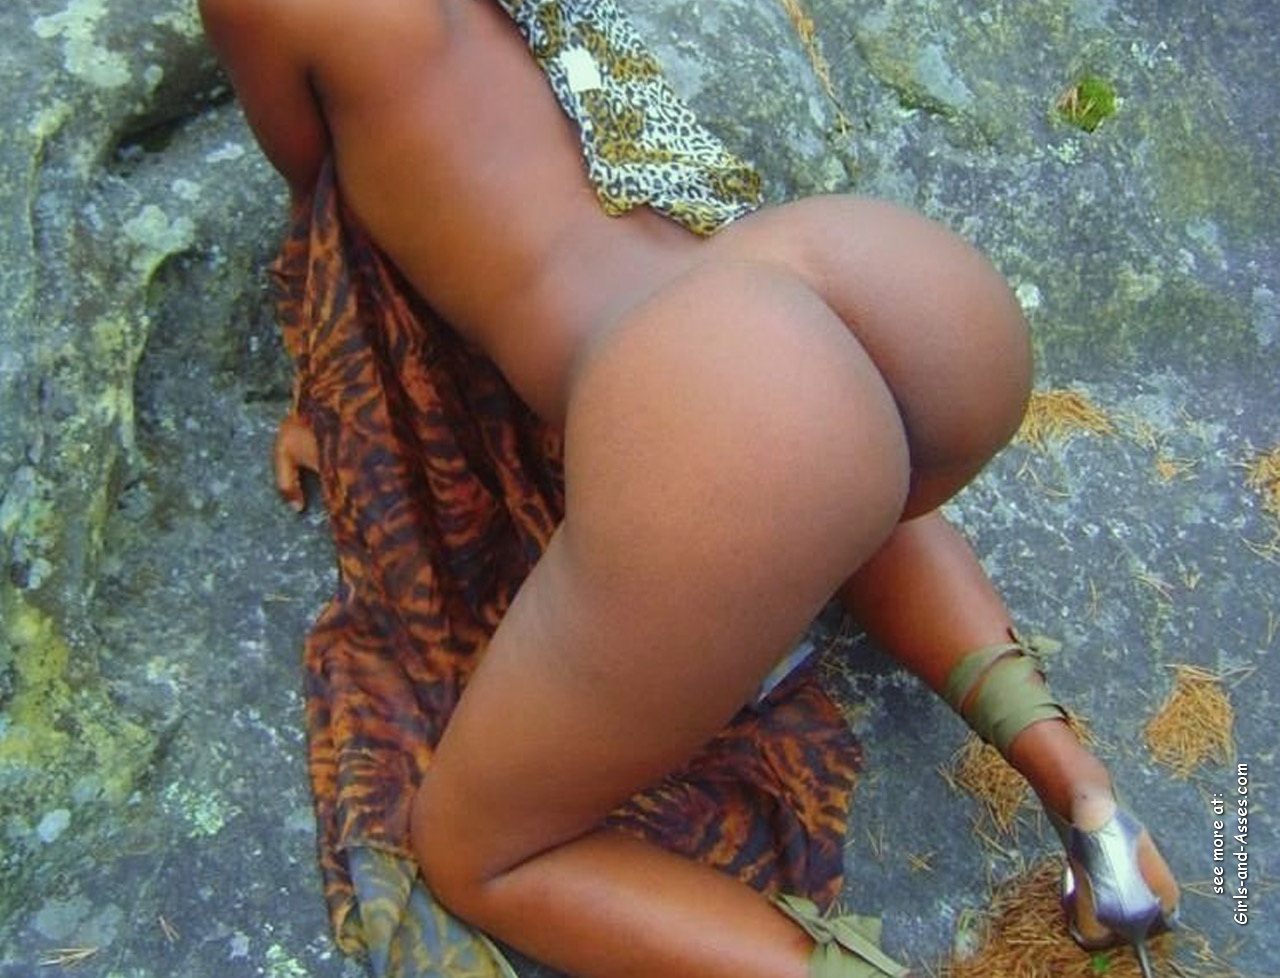 naked girl with big ass in a river picture 03135